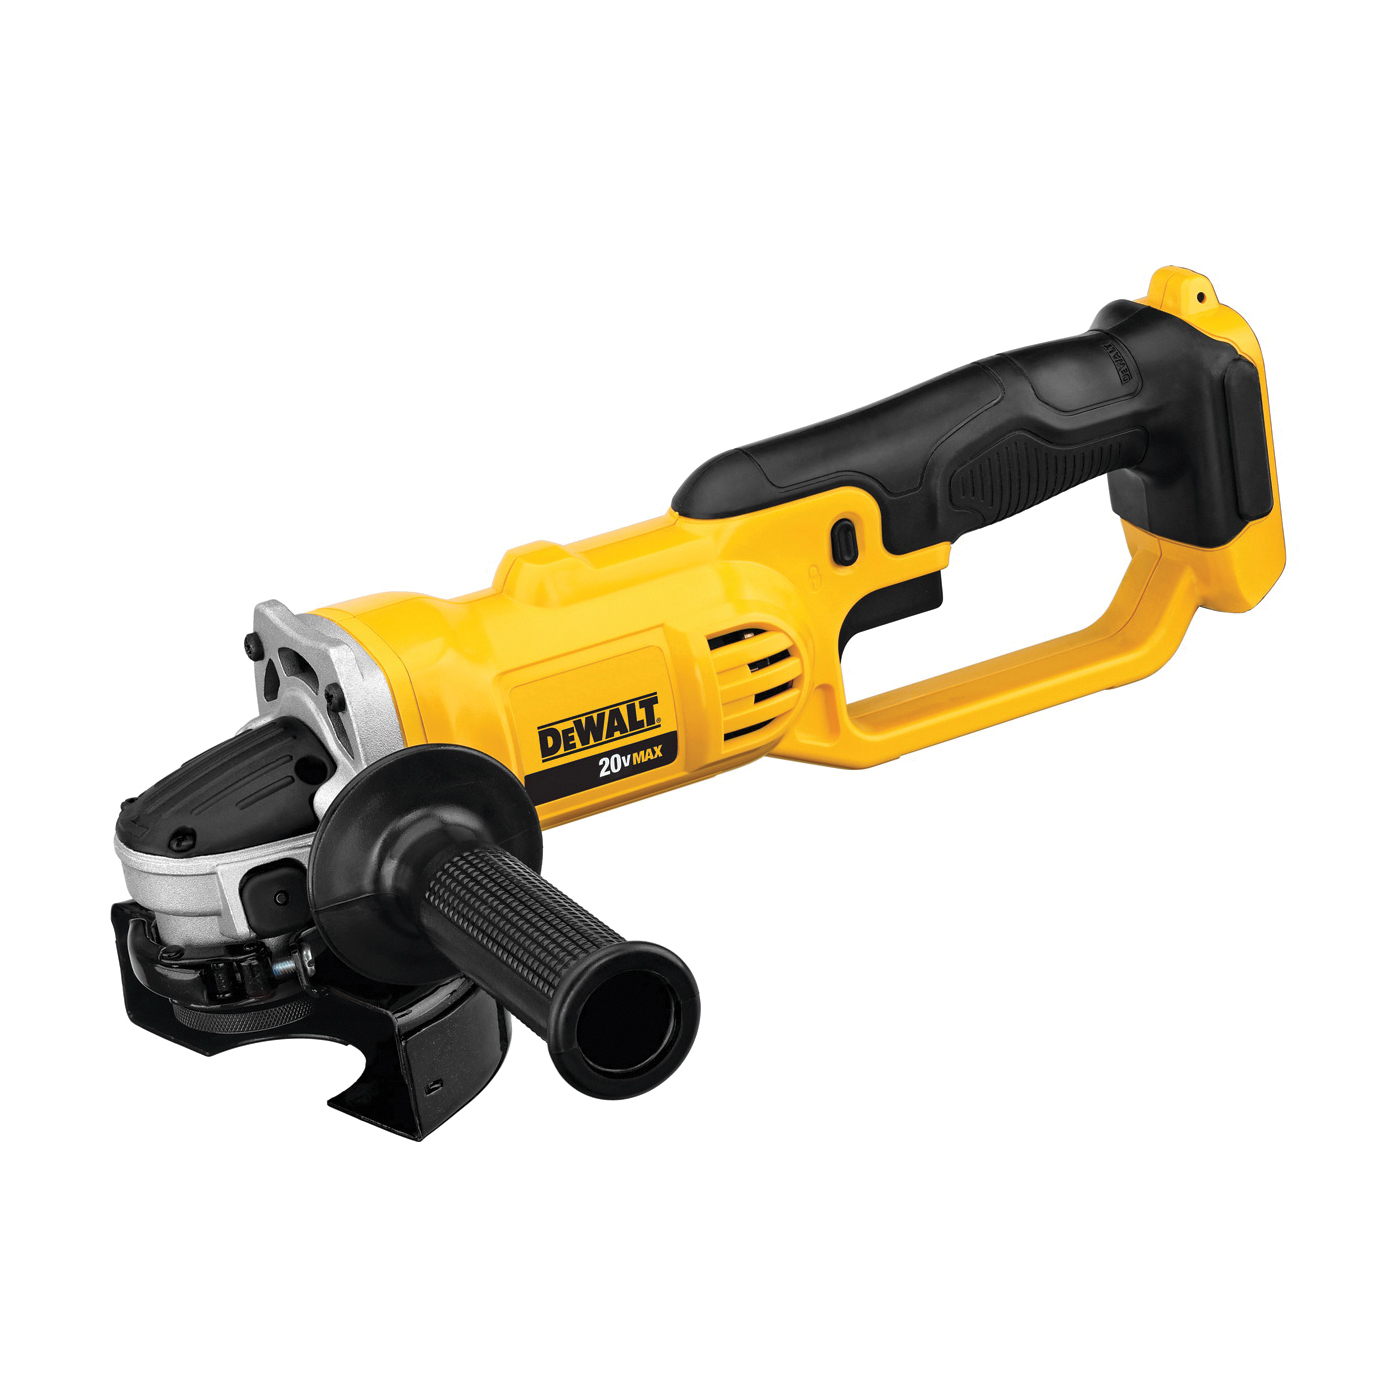 Picture of DeWALT DCG412B Angle Grinder, Bare Tool, 20 V Battery, 3 Ah, 5/8 in Spindle, 4-1/2 in Dia Wheel, 8000 rpm Speed